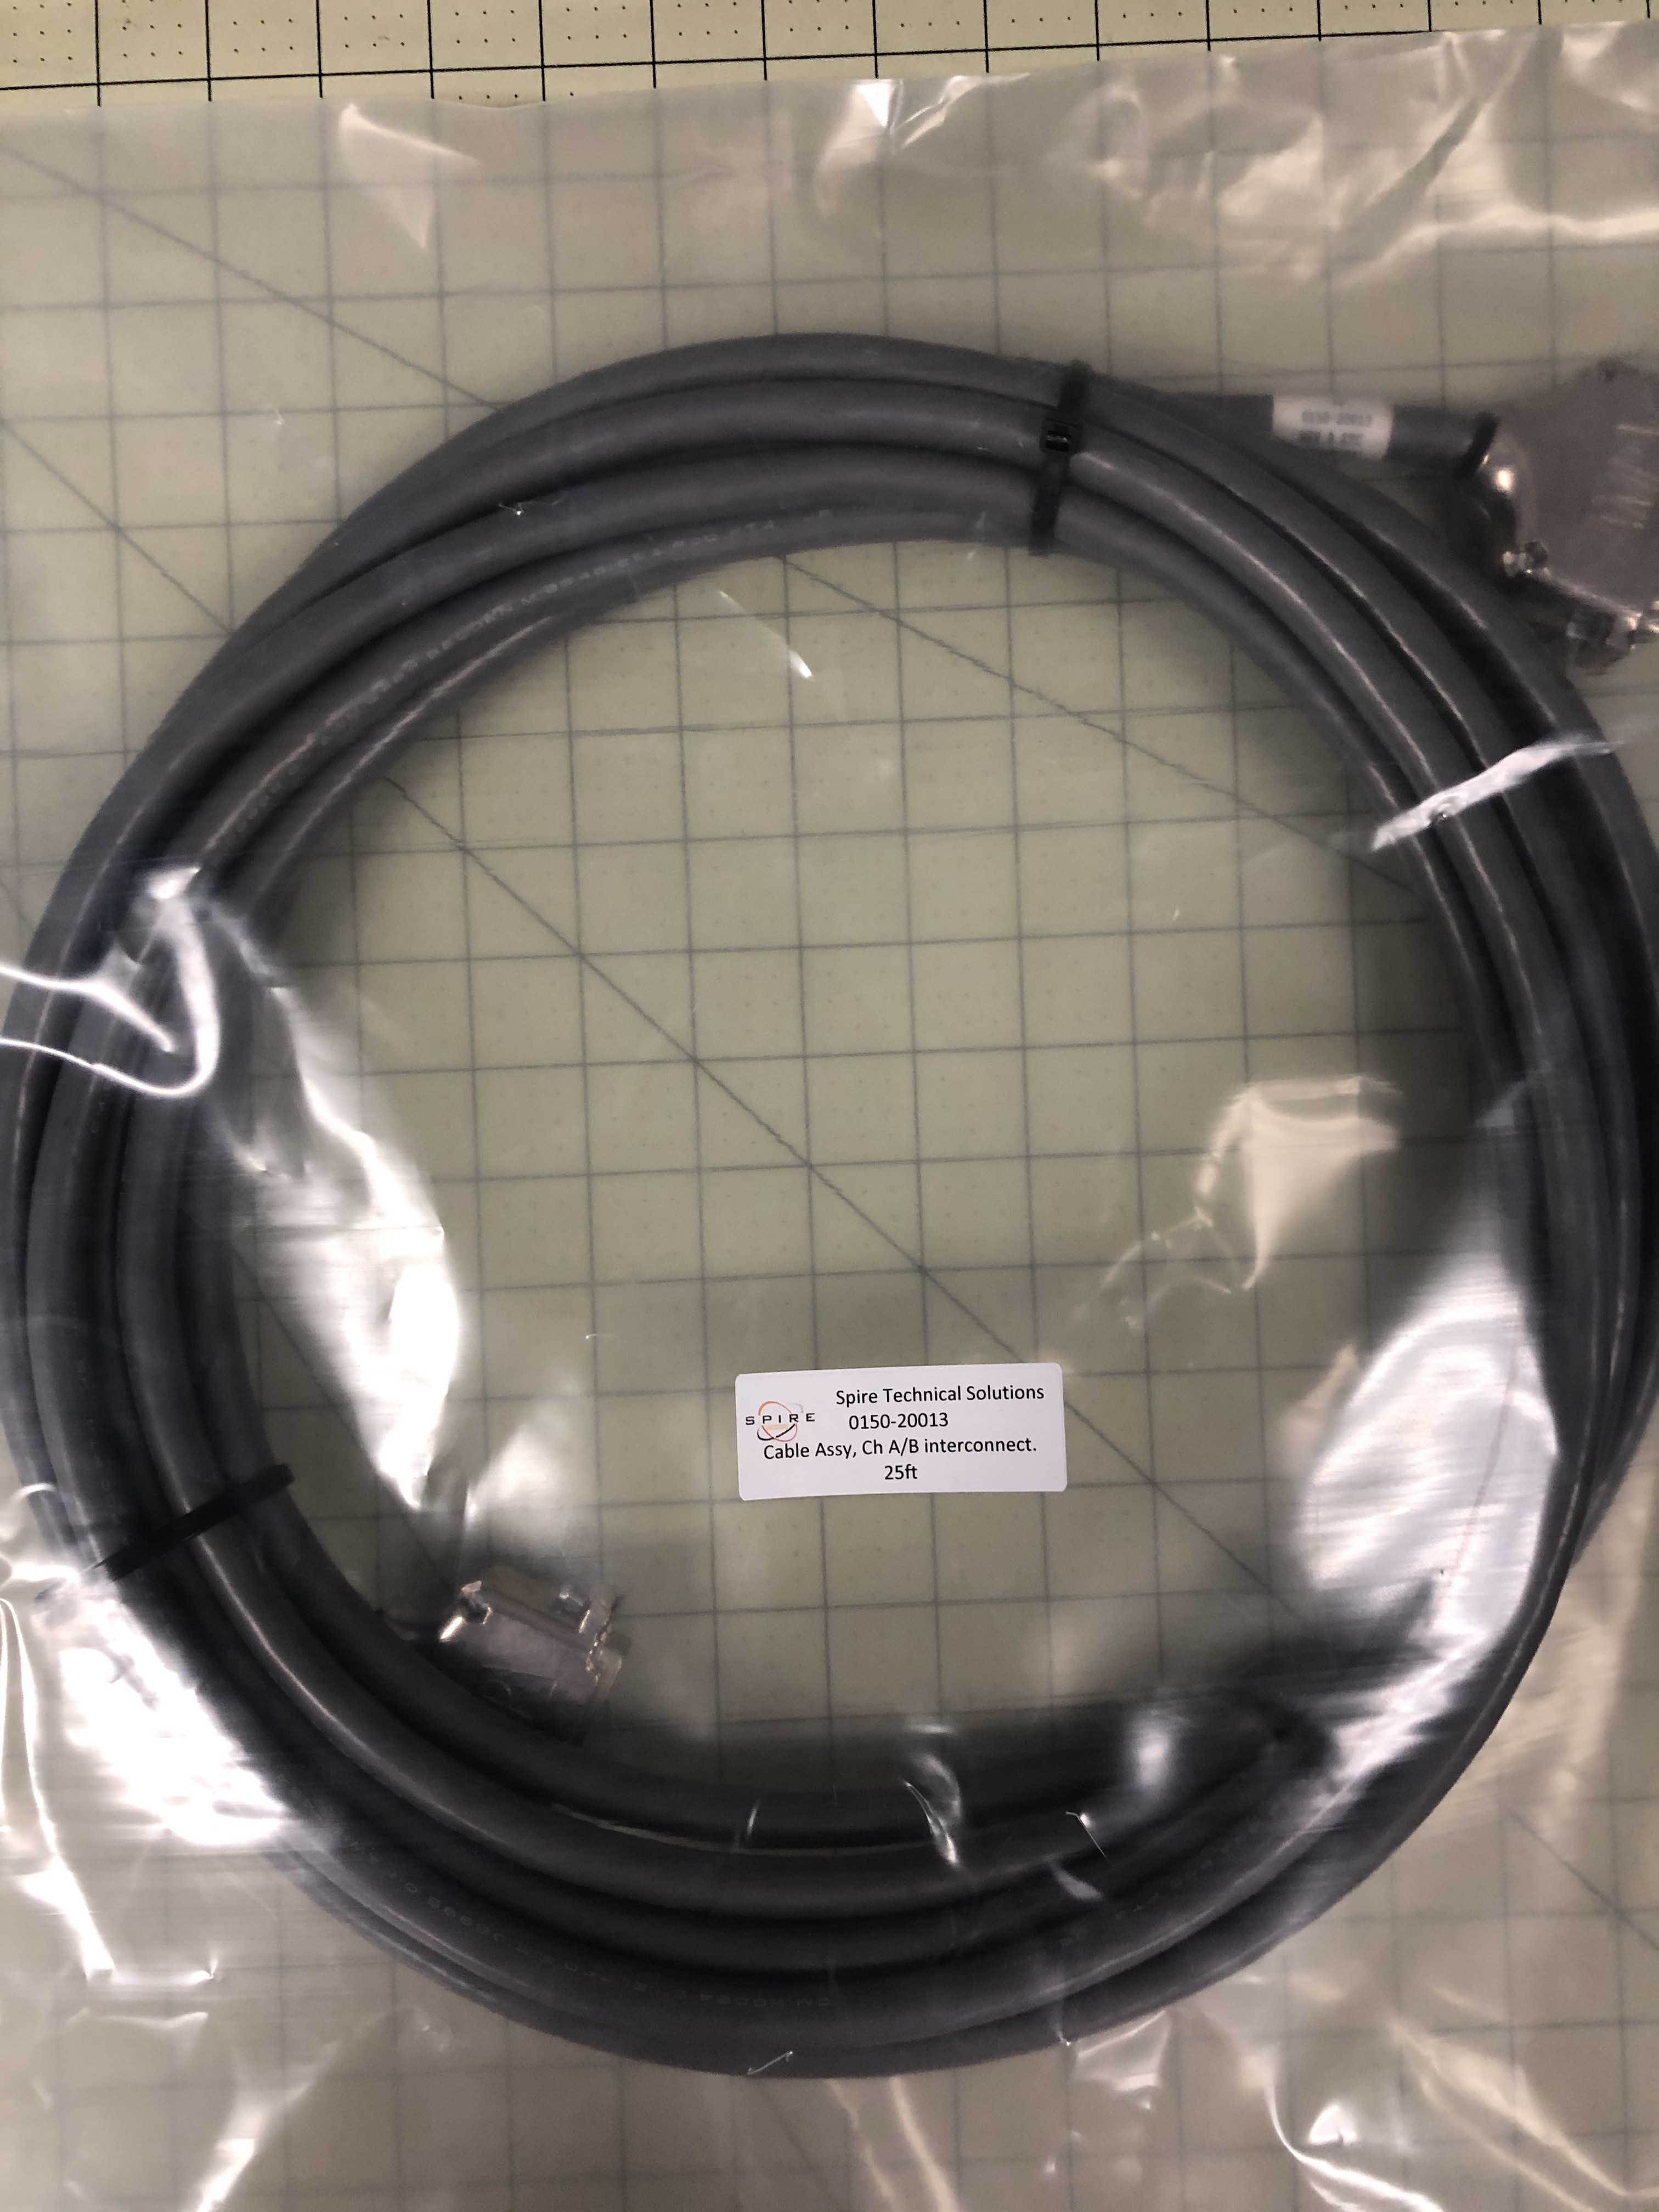 Cable Assy, Ch A/B interconnect.  25ft